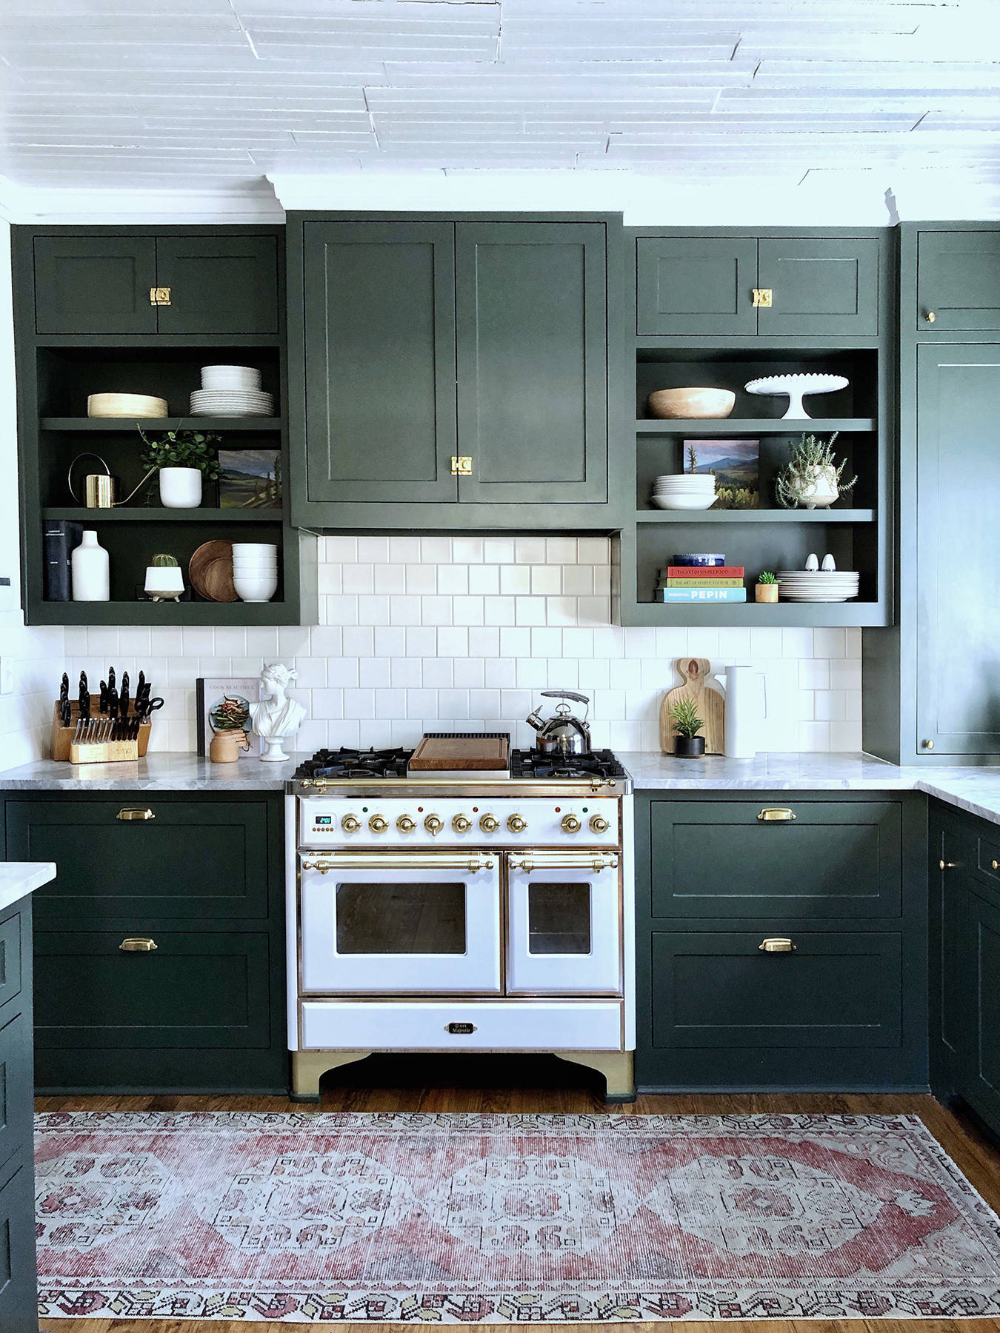 Fairmont District Kitchen Remodel Transitional Kitchen Dallas By Urbanology In 2020 Classic Kitchen Cabinets Kitchen Cabinet Colors Kitchen Cabinet Inspiration